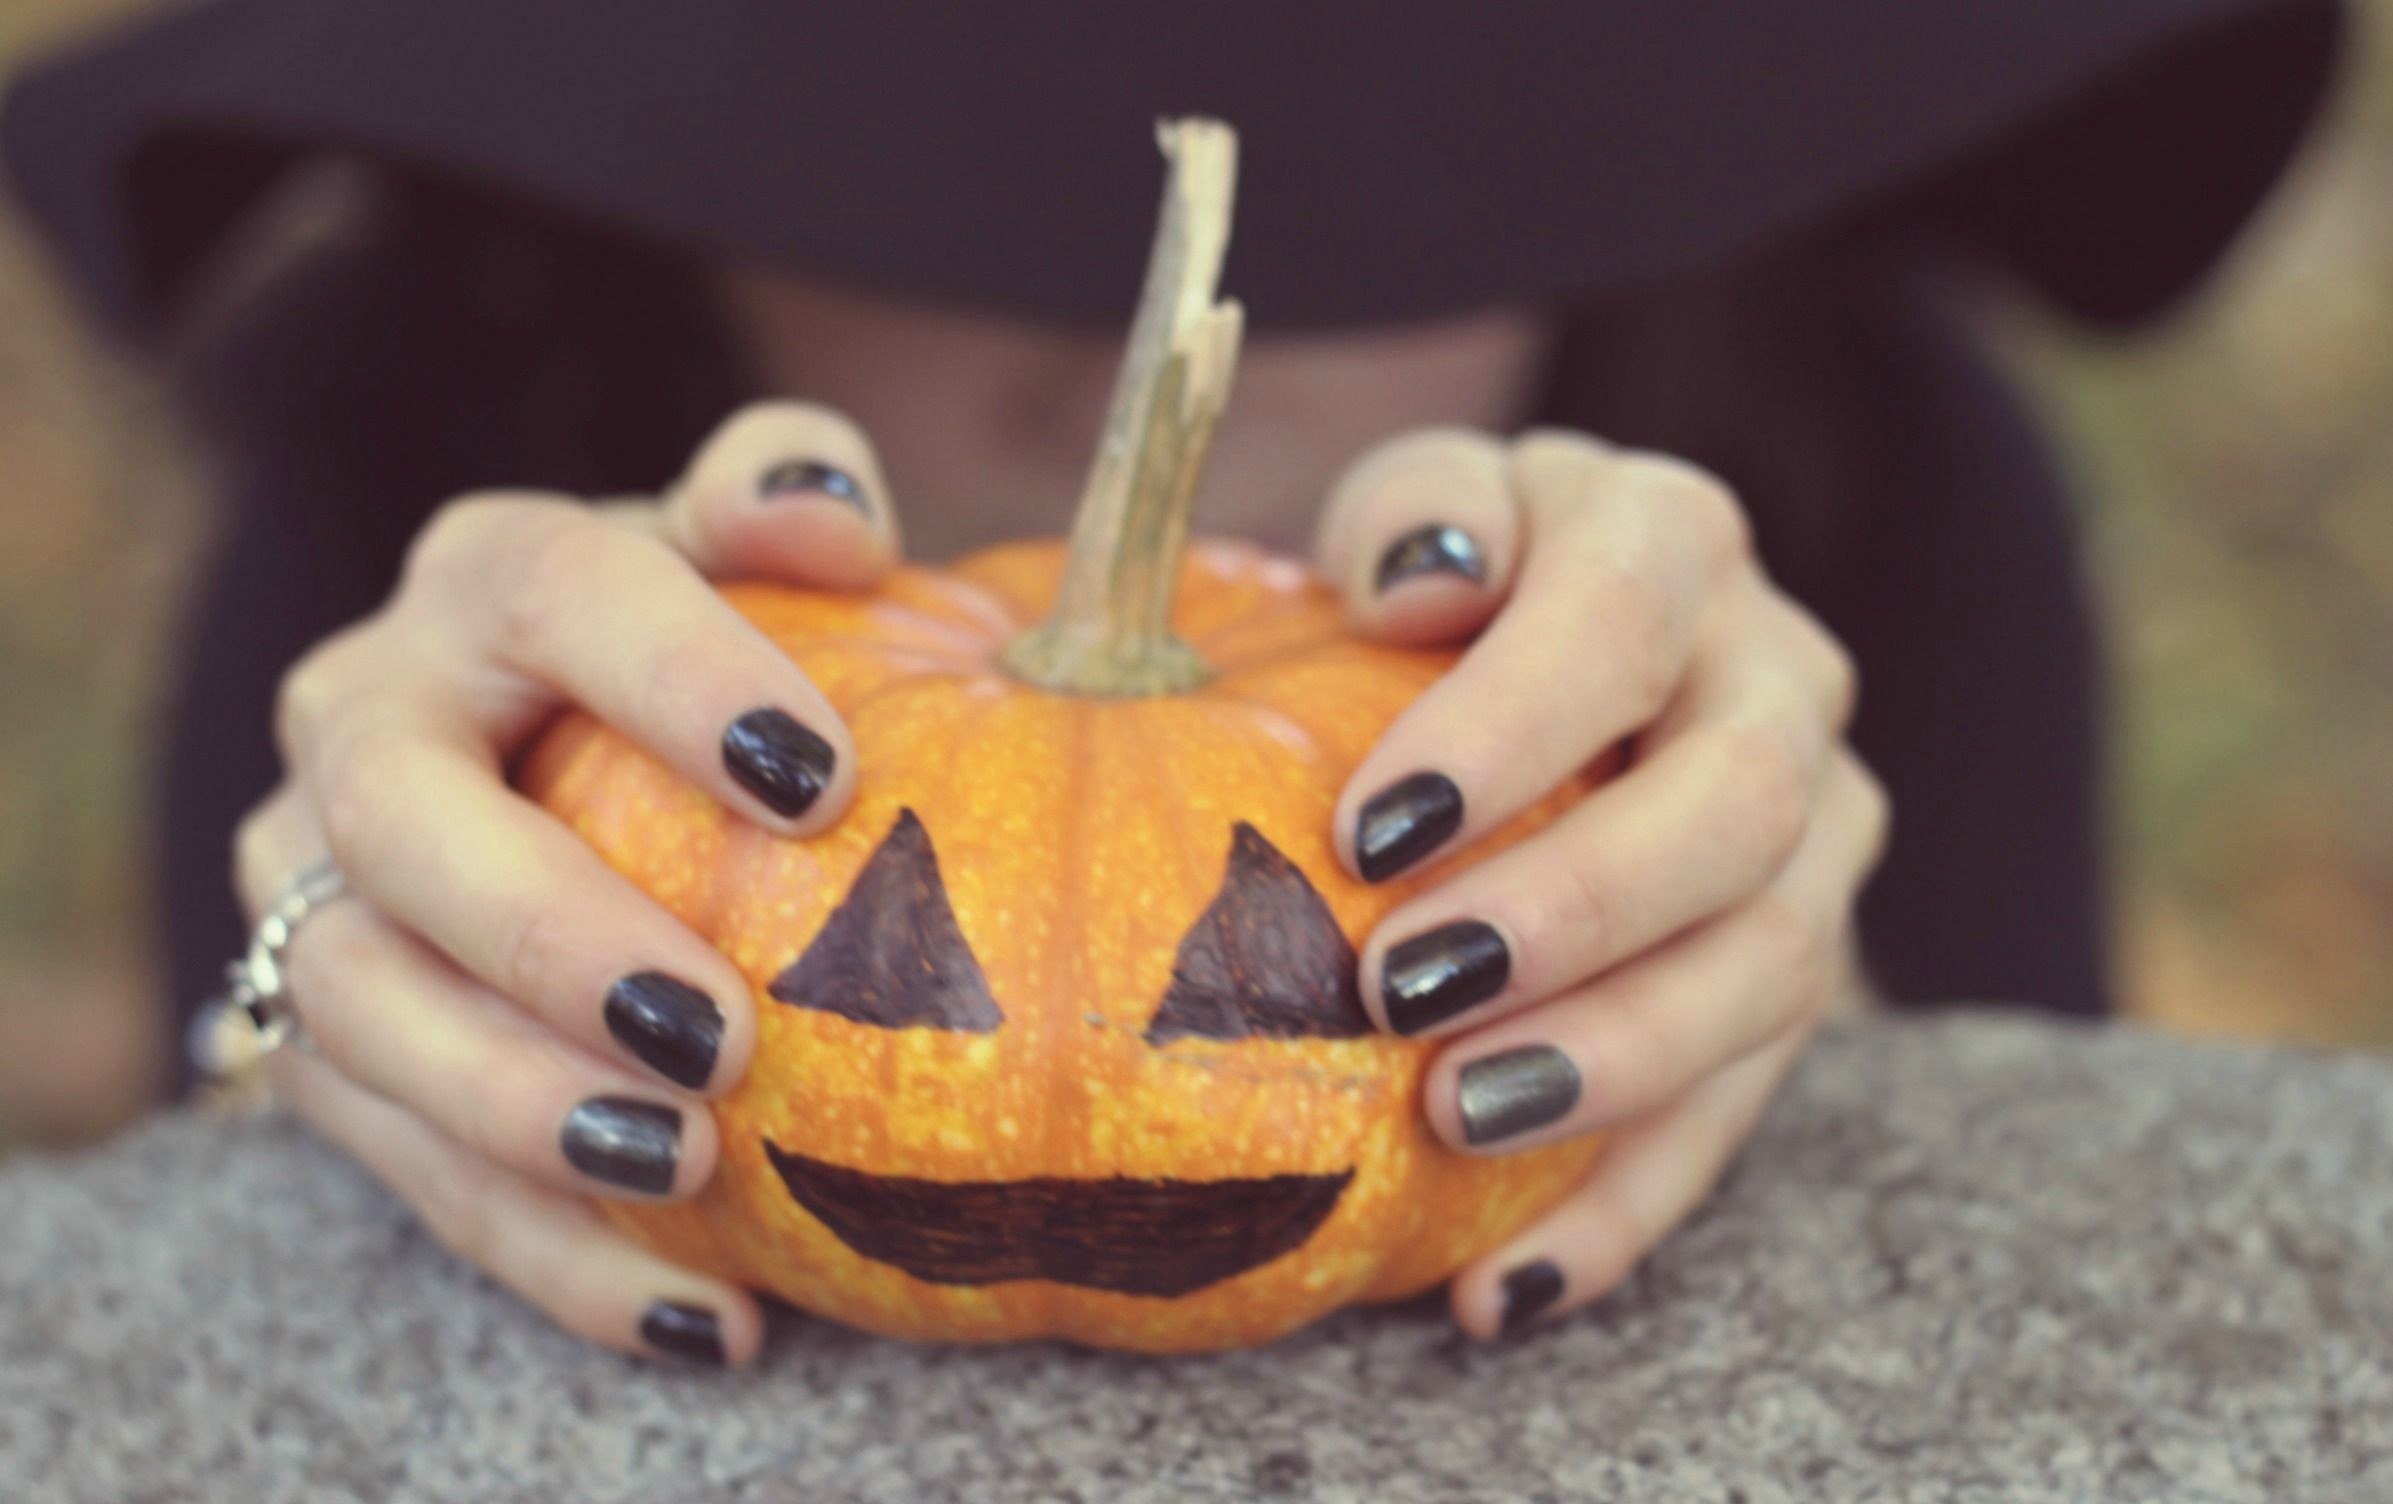 Halloween Nails, American Horror Story Coven, Witch, Pumpkin, Fall Fashion, Witch Costume, season, Women